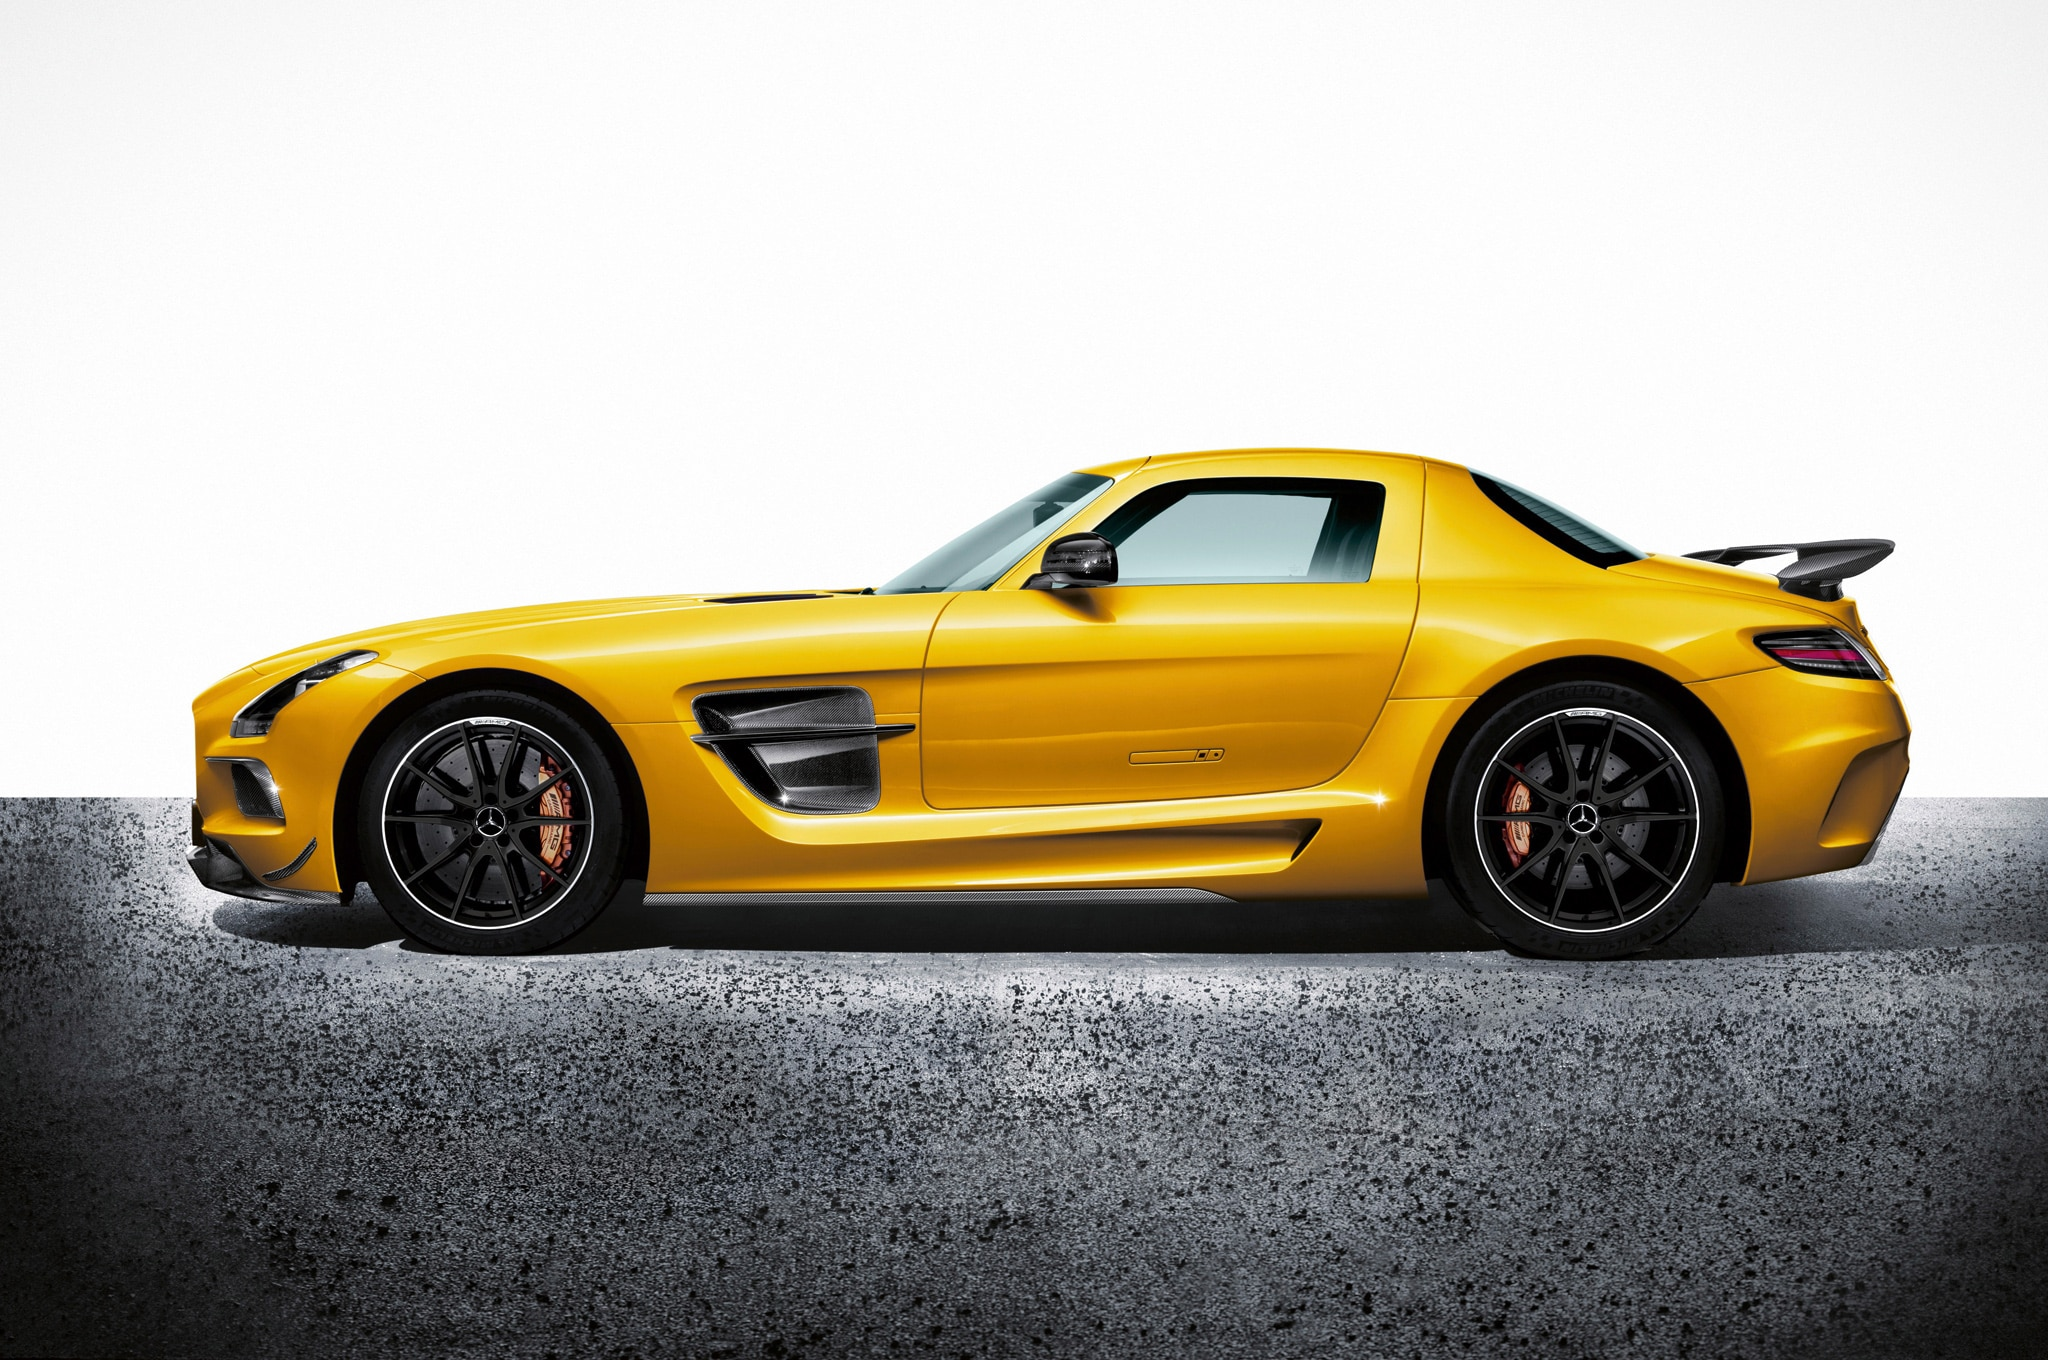 Mercedes C63 Amg 0 60 >> Priced: 2014 Mercedes SLS AMG Black Series, C63 AMG ...